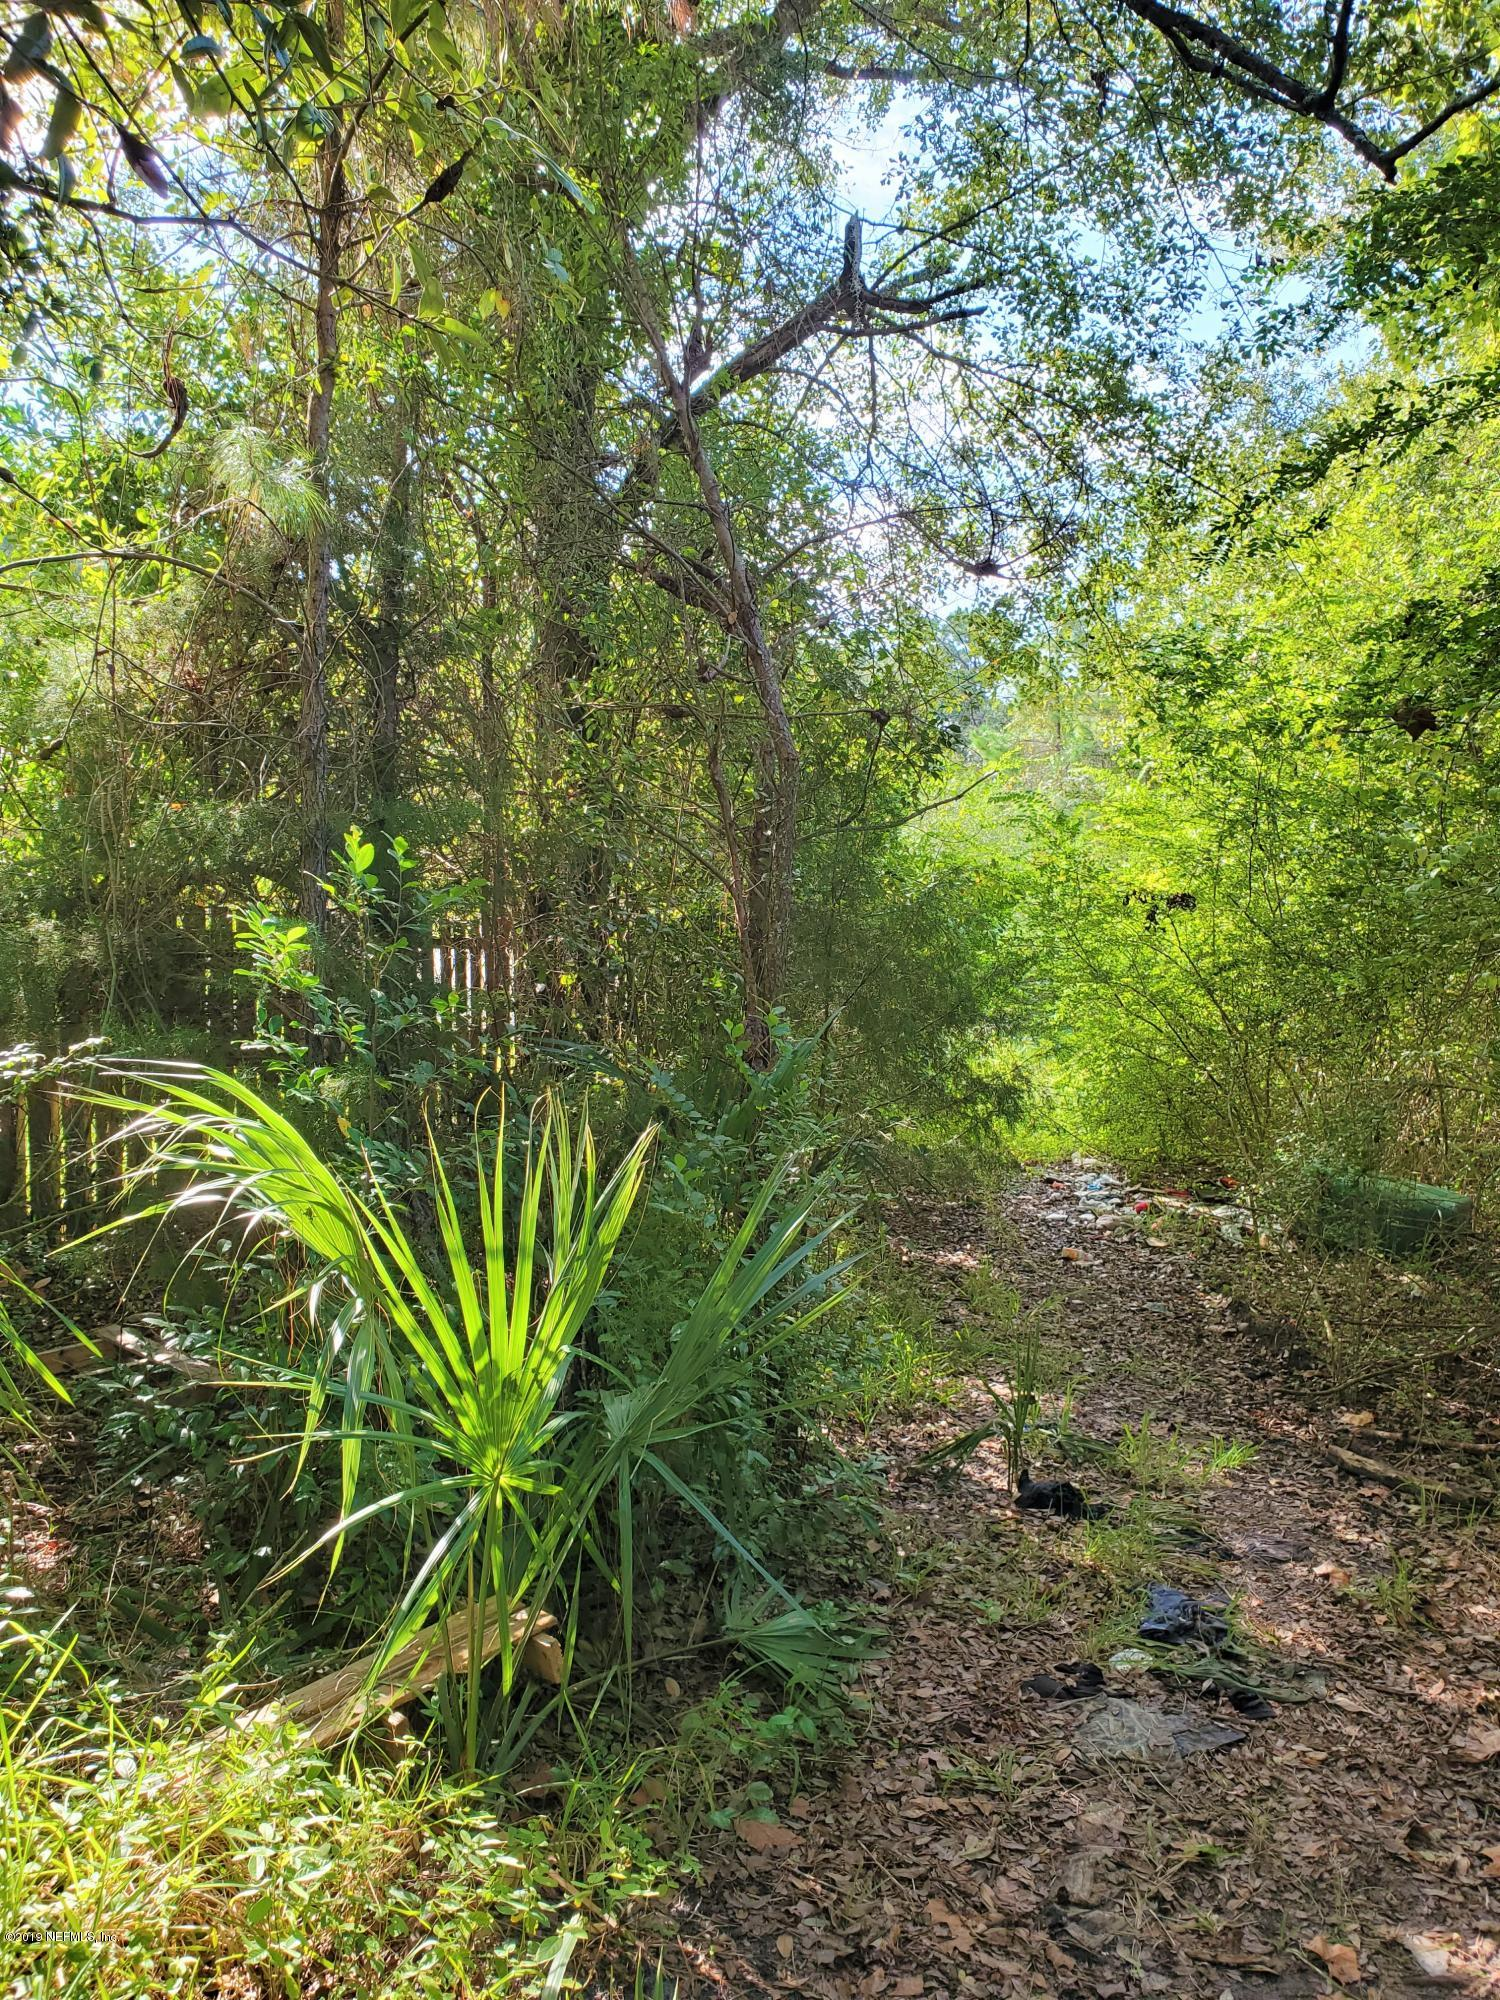 0000 7TH, JACKSONVILLE, FLORIDA 32218, ,Vacant land,For sale,7TH,1020413